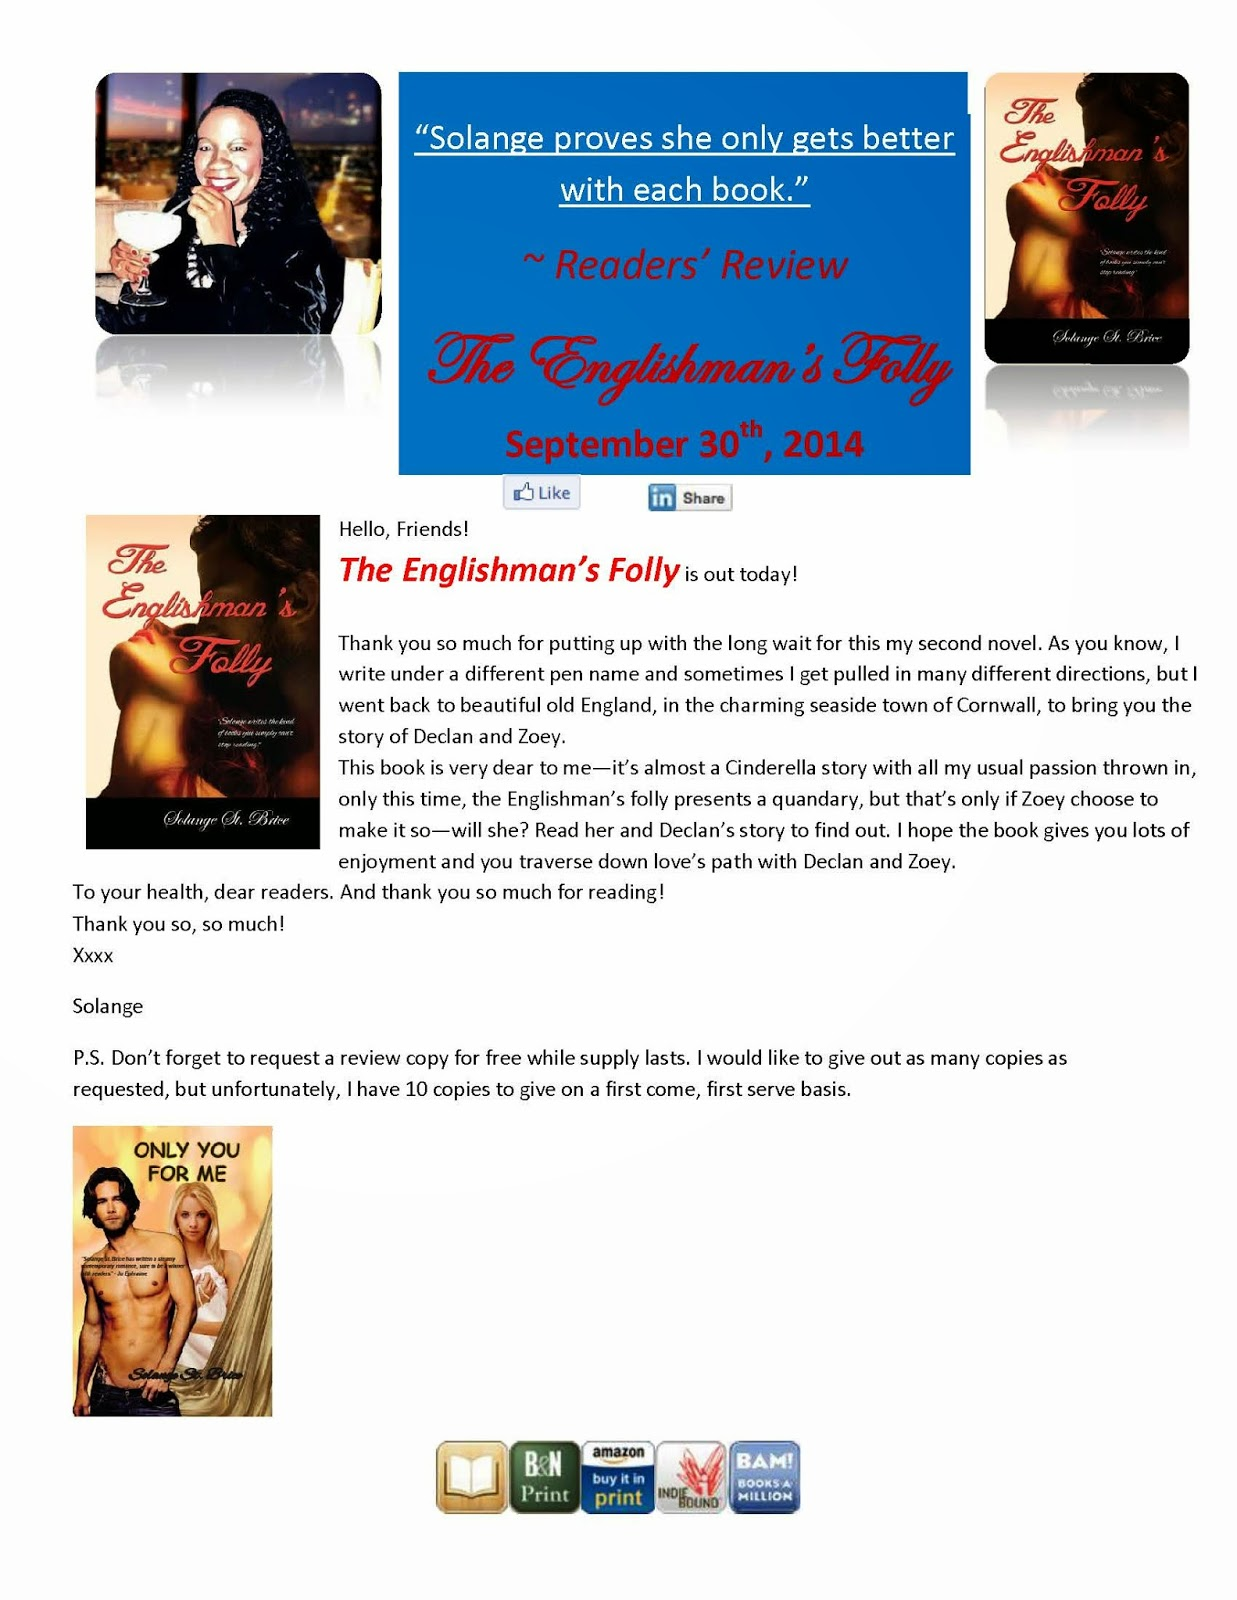 http://www.amazon.com/Englishmans-Folly-Solange-St-Brice-ebook/dp/B00MSPCQMK/ref=sr_1_1?s=books&ie=UTF8&qid=1412203609&sr=1-1&keywords=solange+st.+brice